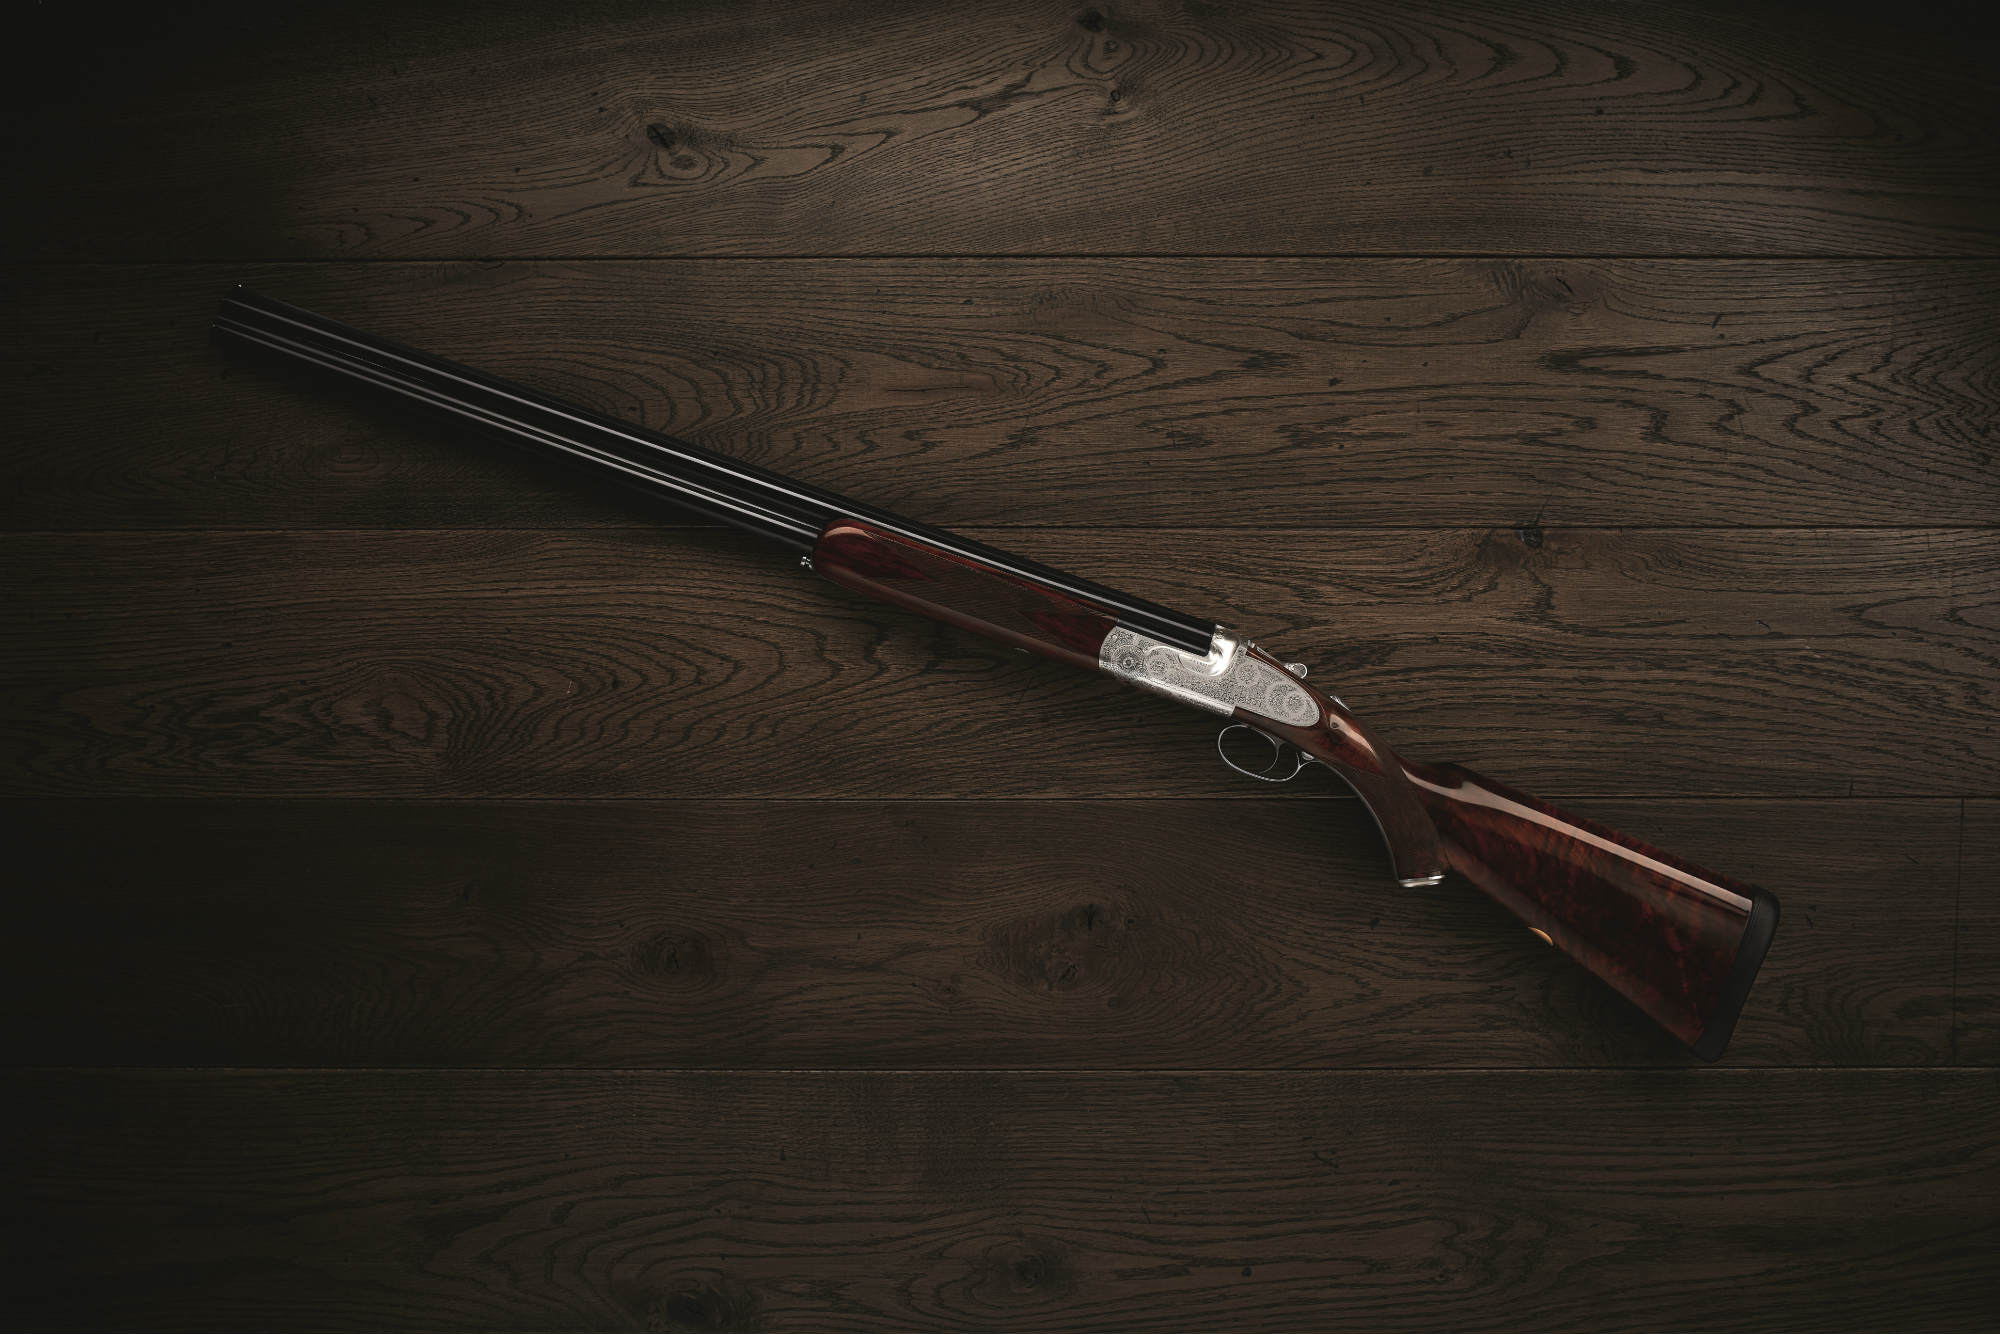 The Purdey Trigger Plate over-and-under shotgun.